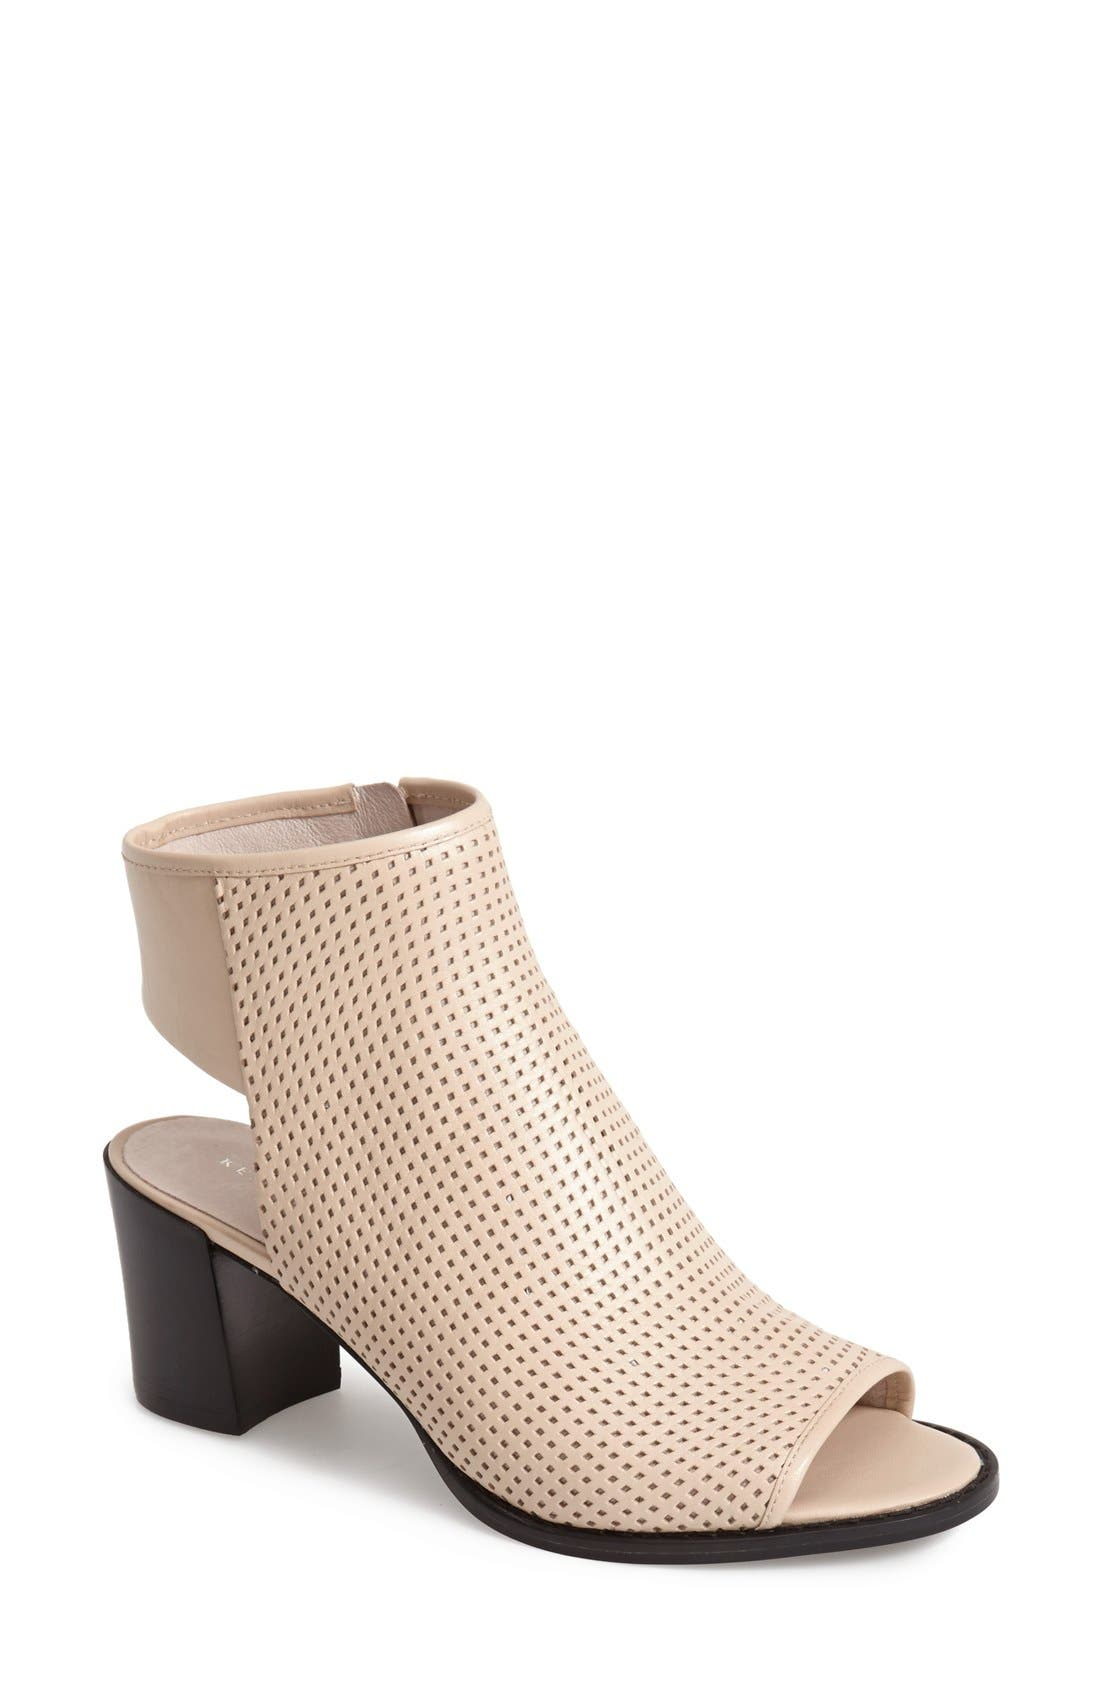 Main Image - Kenneth Cole New York 'Shay' Open Toe Perforated Leather Bootie (Women)